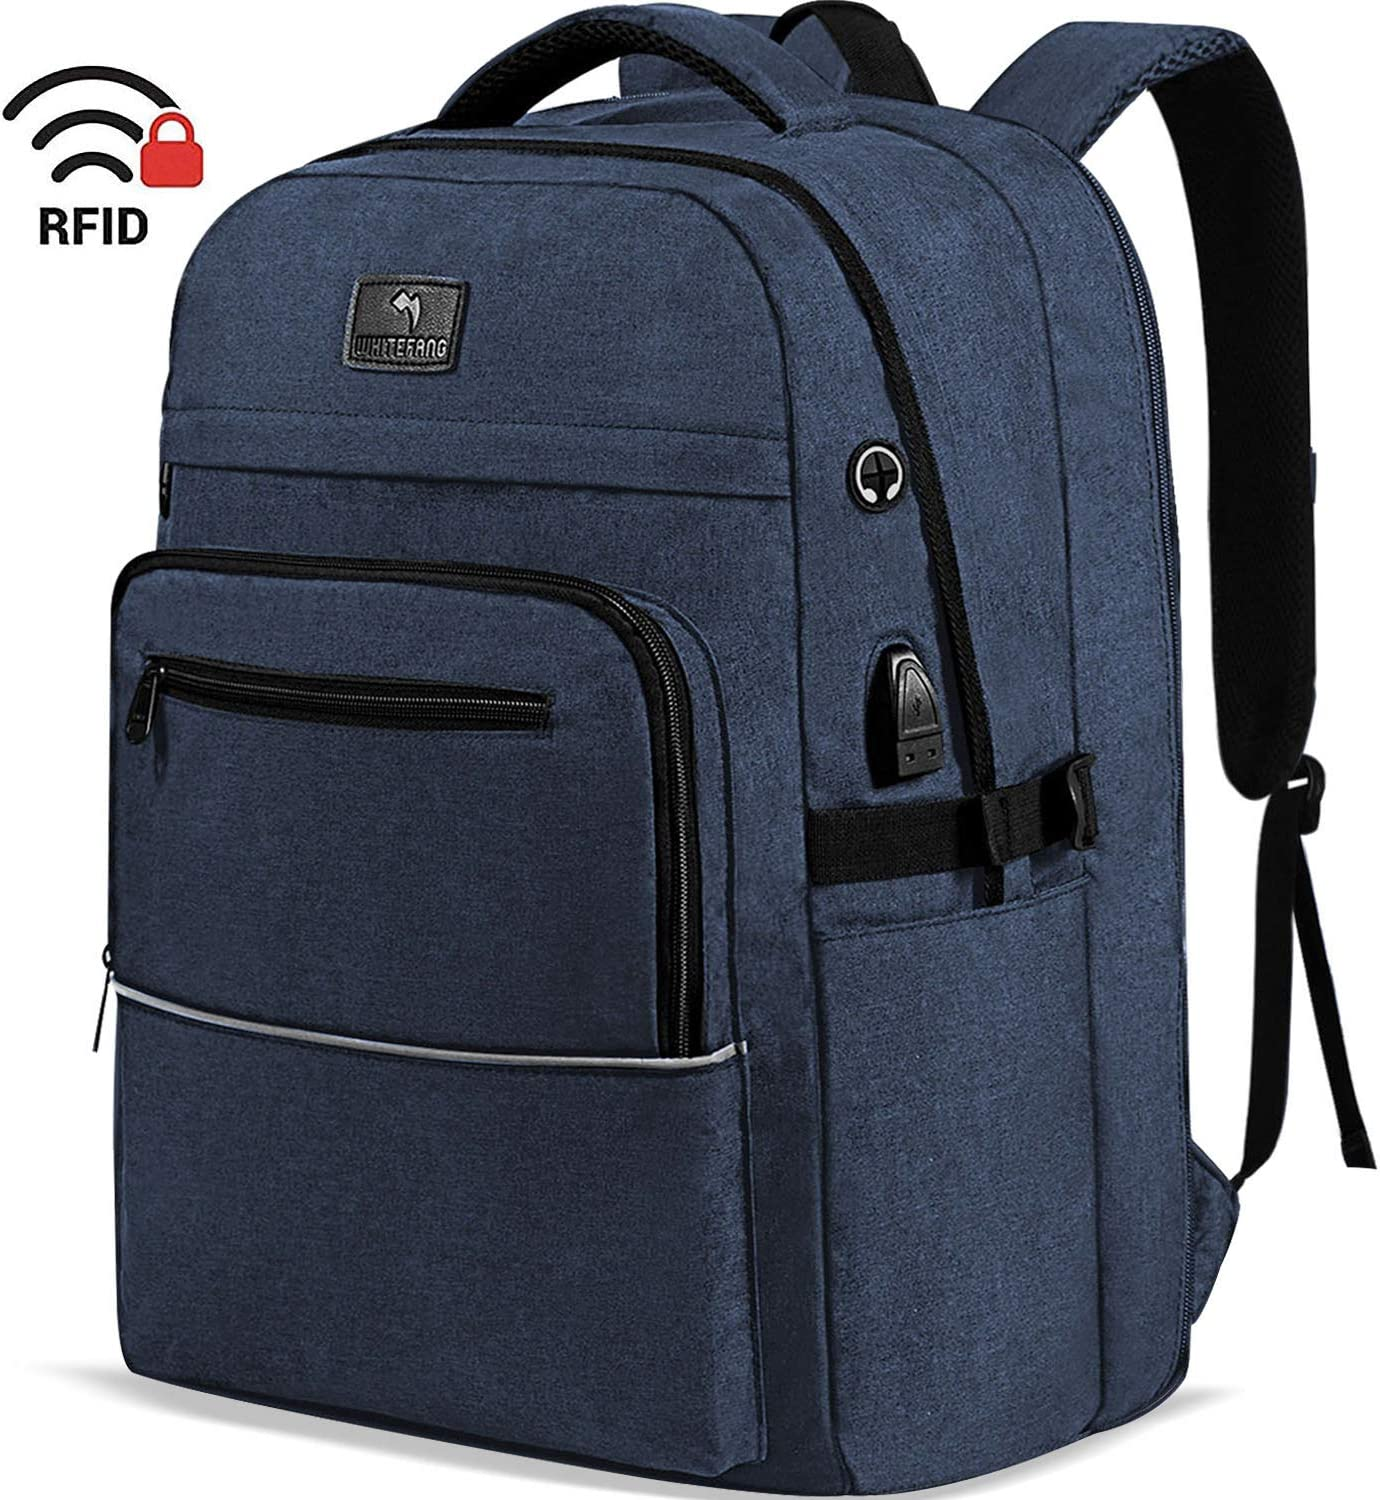 Laptop Backpack,WhiteFang 17.3 Inch Extra Large TSA Friendly Business Travel Laptop Backpack with USB Charging Port, RFID Pockets Water Resistant Big School Backpack for Women & Men Fits 17.3 Inch Laptop-Blue